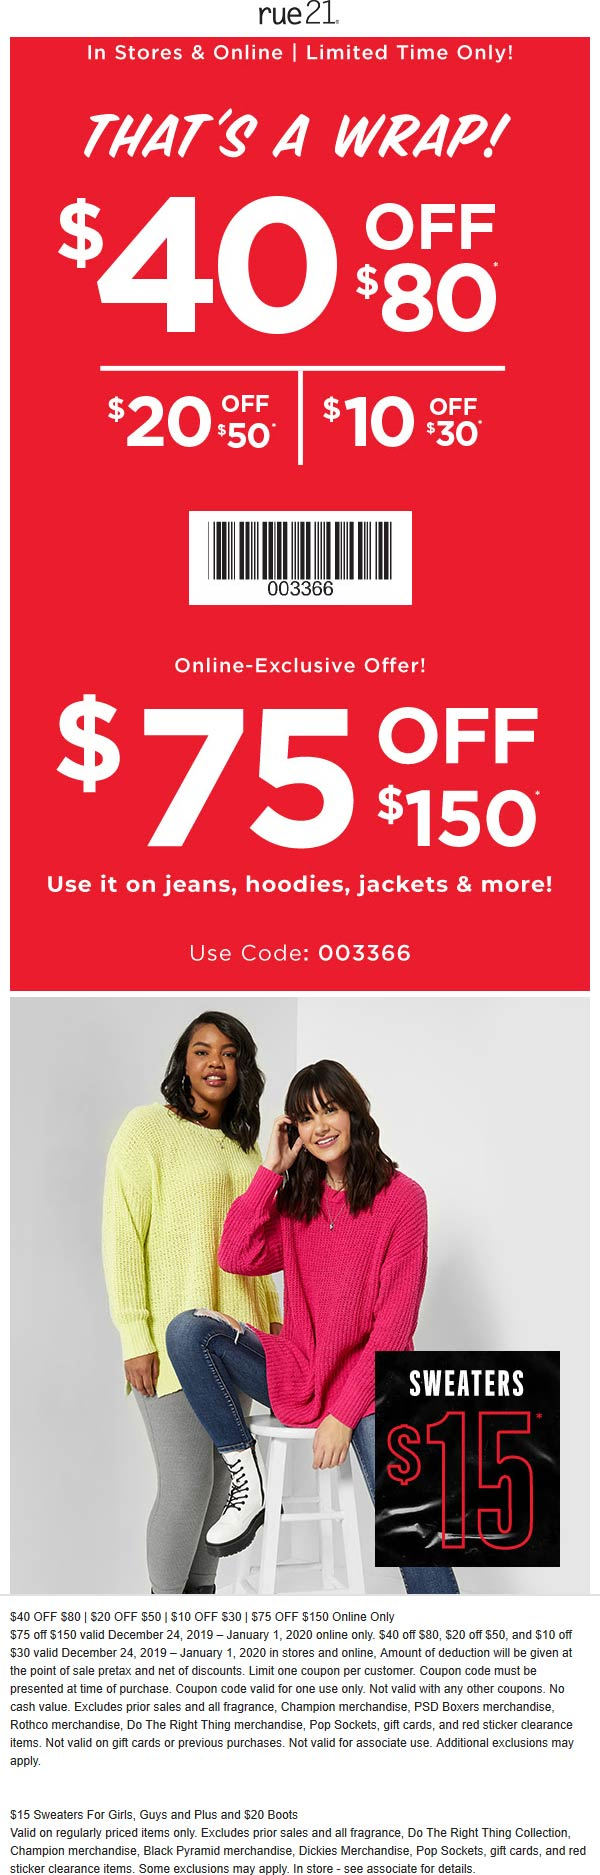 Rue21 coupons & promo code for [January 2021]